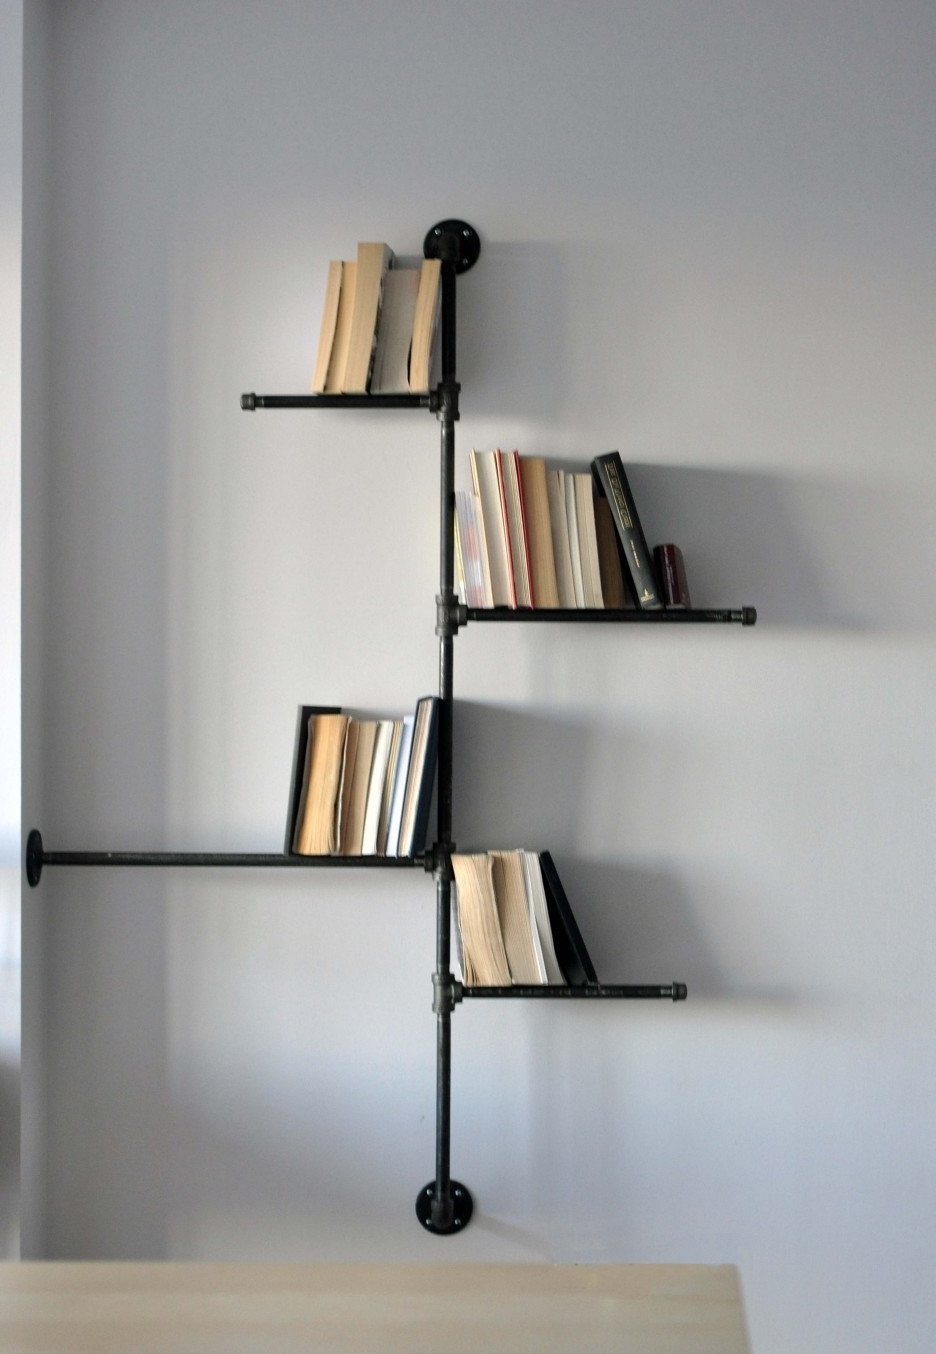 Favorite Remarkable Industrial Ikea Creative Bookshelves Design Introducing Regarding Hanging Bookcases (View 4 of 15)